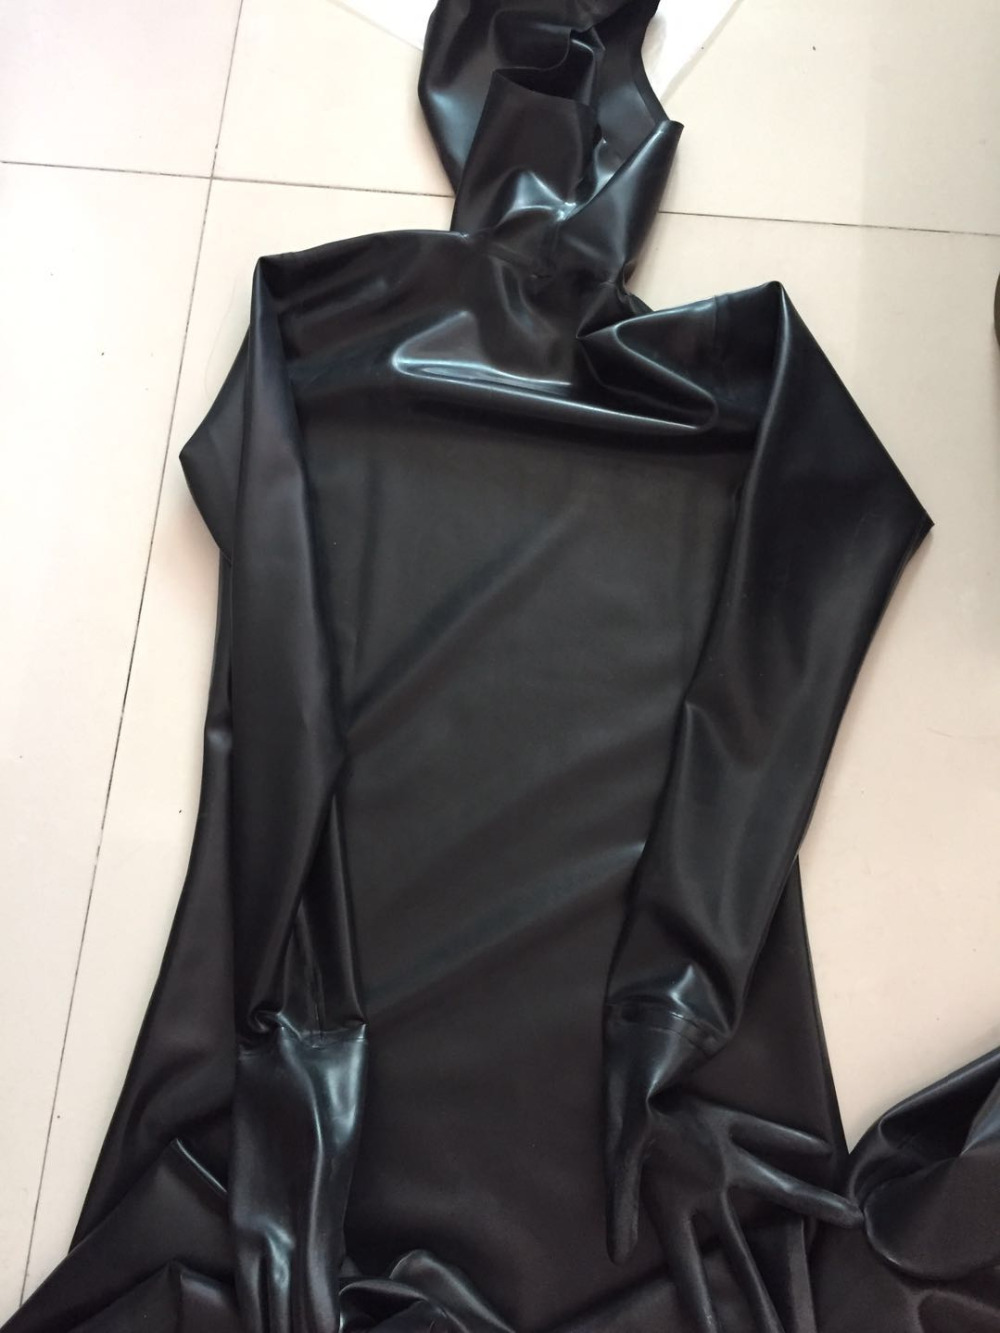 Latex Tights Bodysuit Catsuit Zentai  Customization Handmade Without Zip Face Entrance Flexible Latex Fabric W Gloves Hats